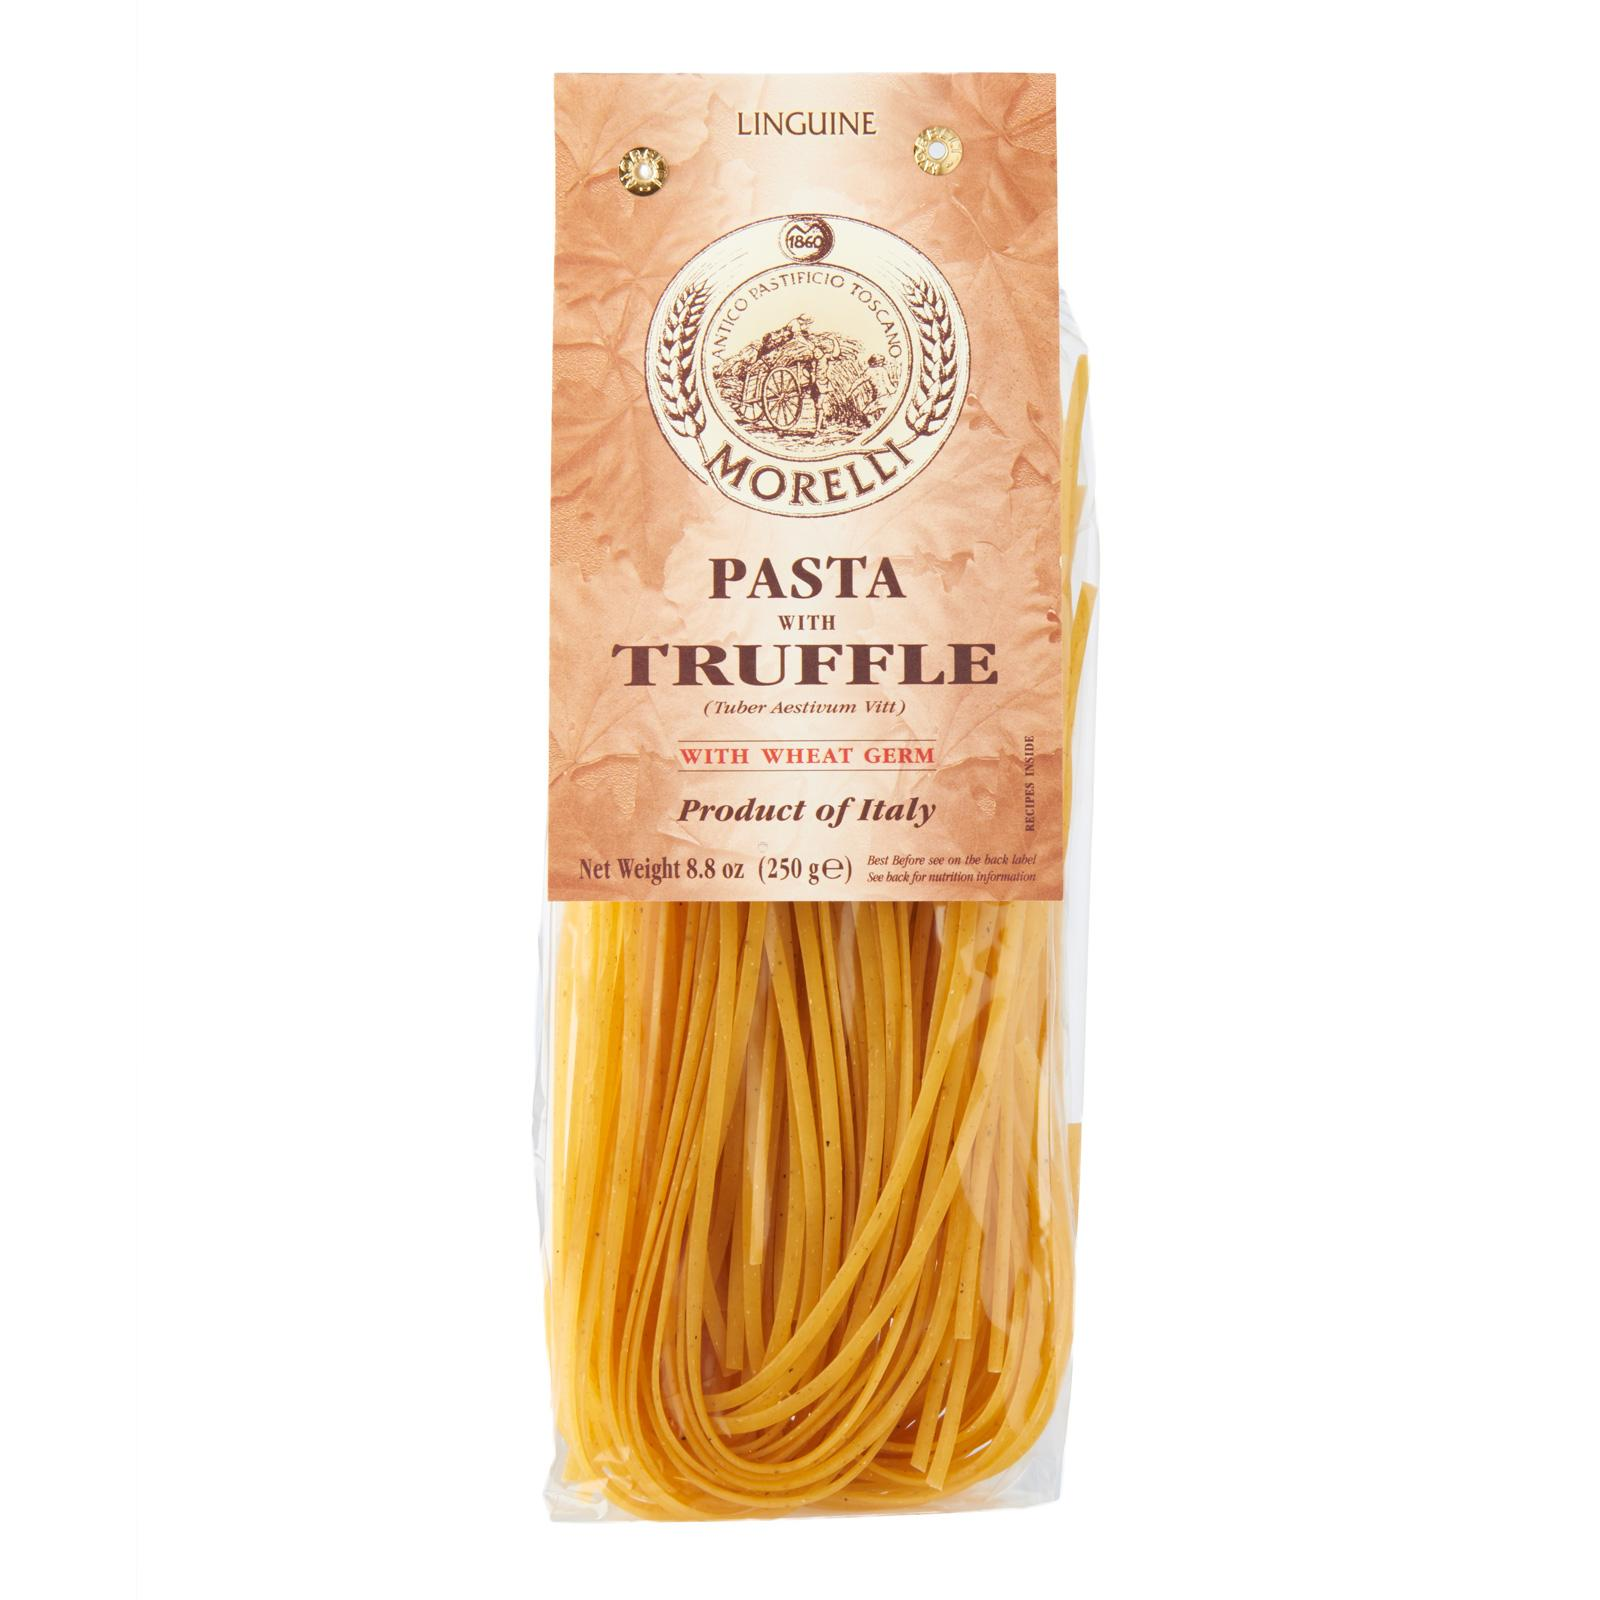 Morelli Pasta Linguine With Truffle By Redmart.